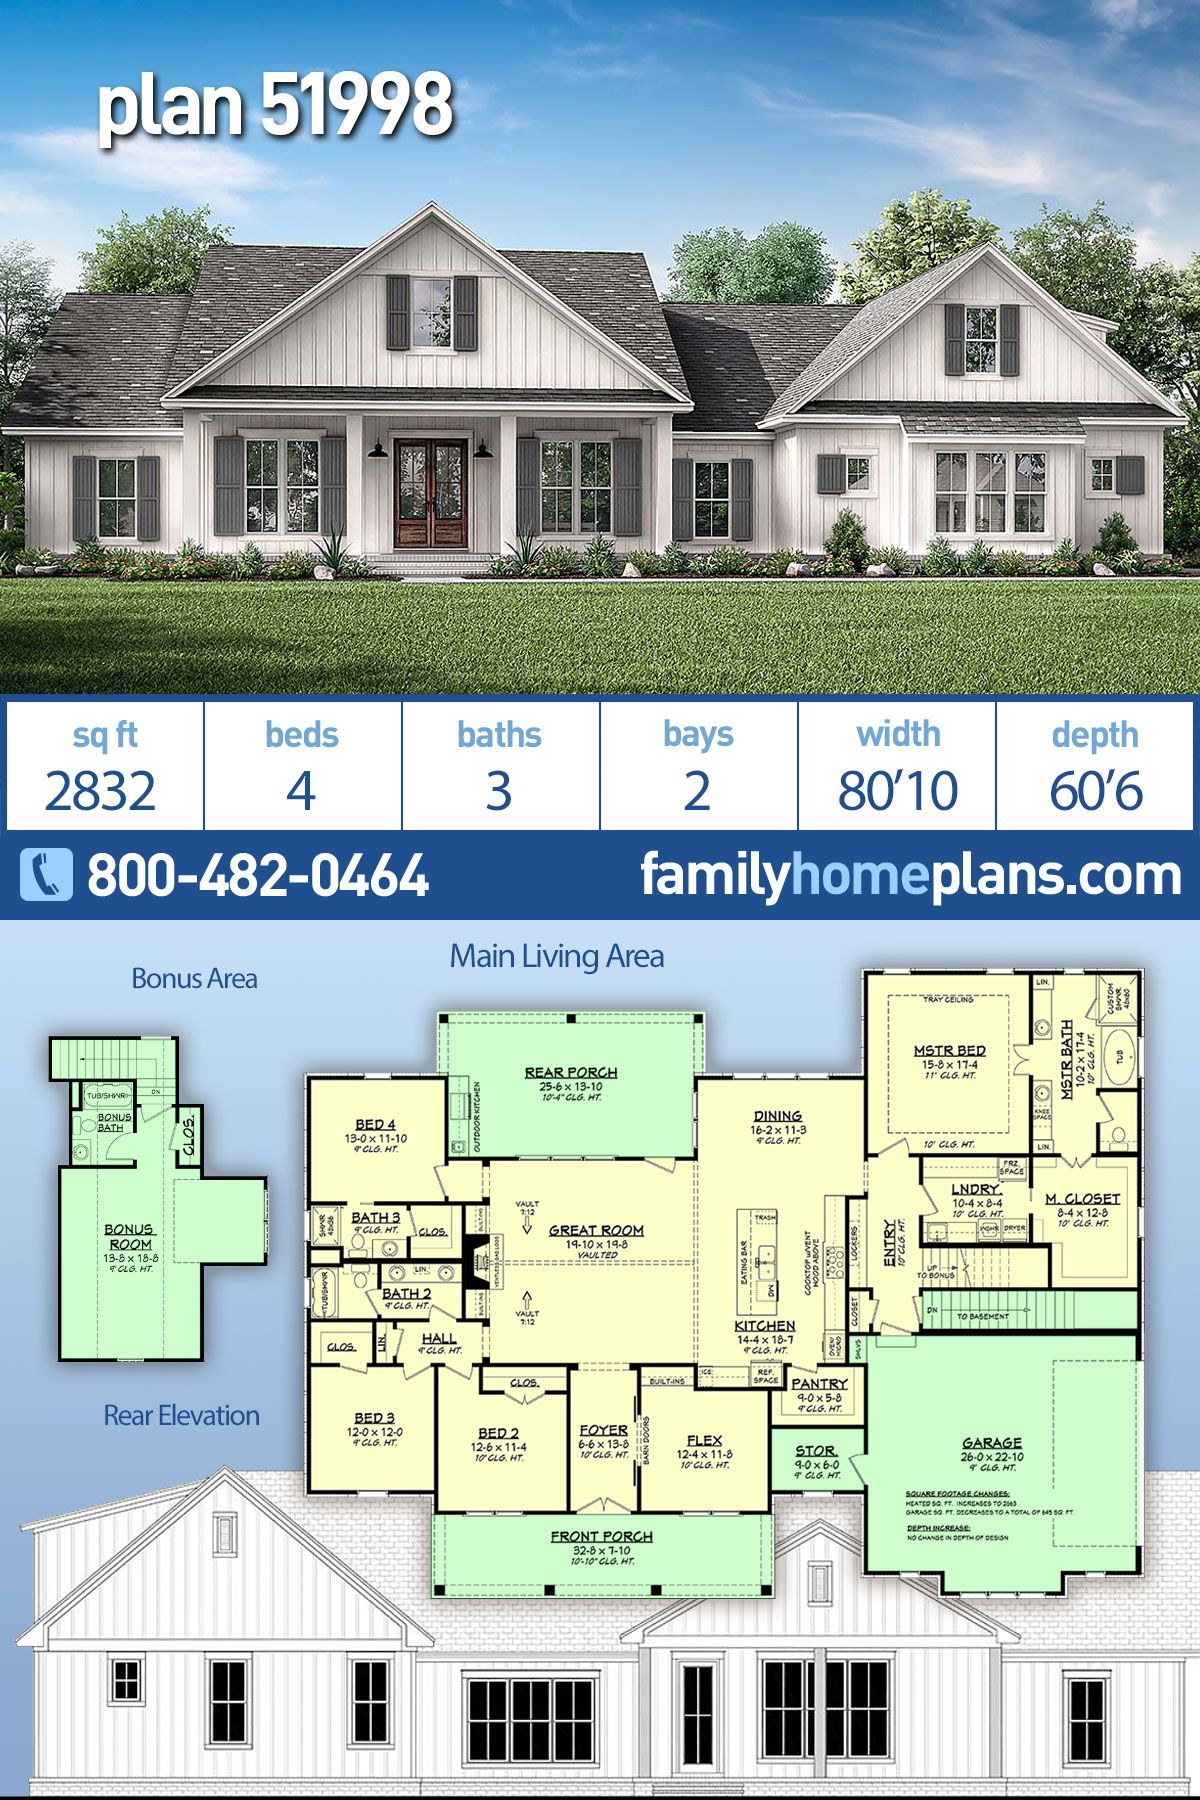 Southern Style House Plan 51998 with 4 Bed, 3 Bath, 2 Car Garage